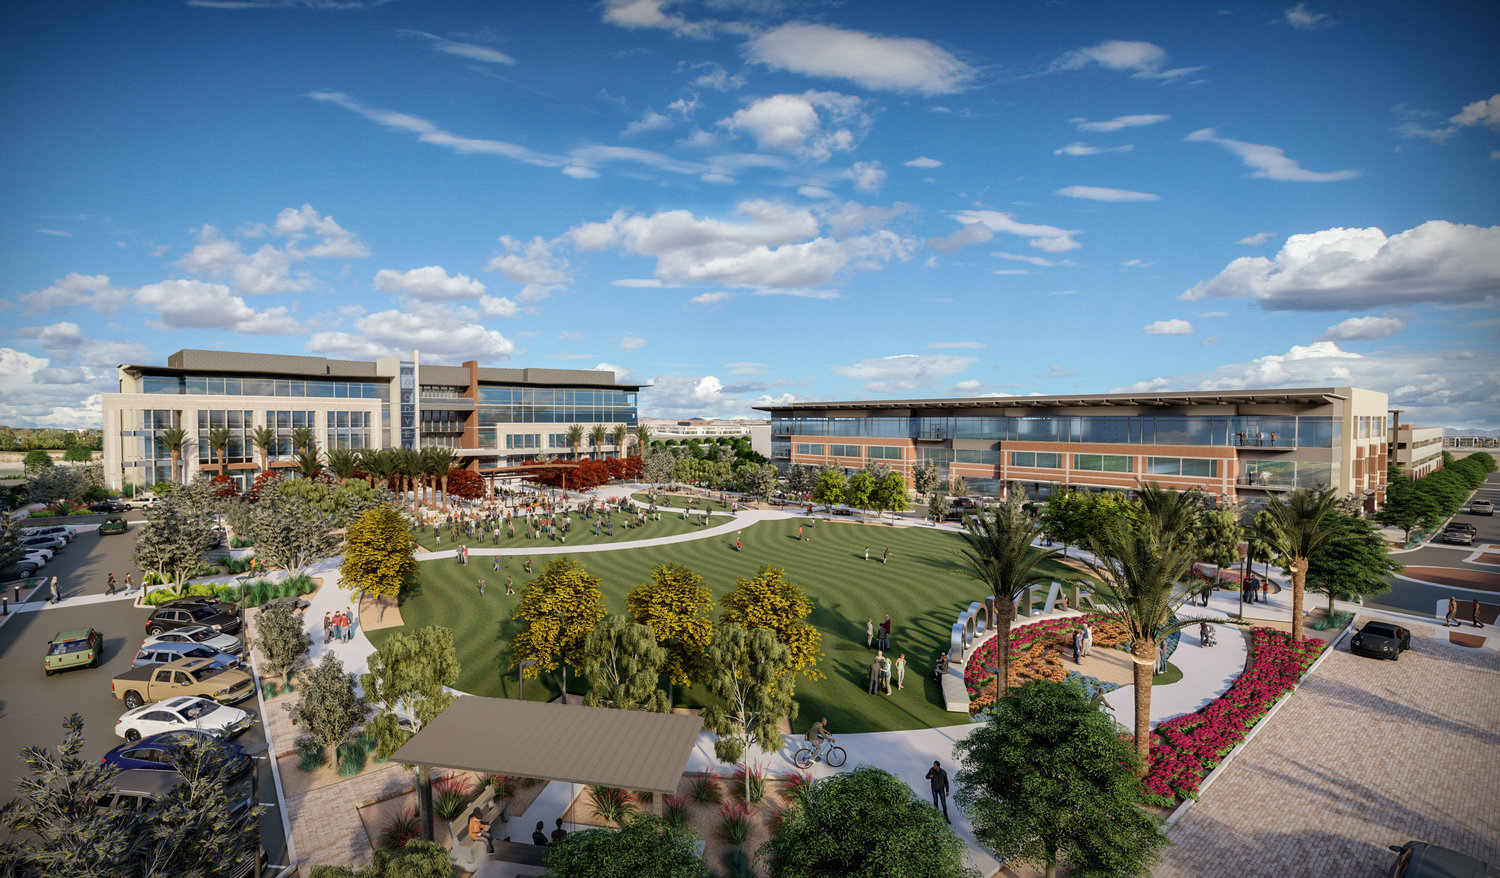 The three-story, 100,000-square-foot Globe Corp. office building, right, is scheduled to open in 2022 along with the new Goodyear City Hall, two-acre park and parking structure. Each is part of Civic Square at Estrella Falls Phase I.